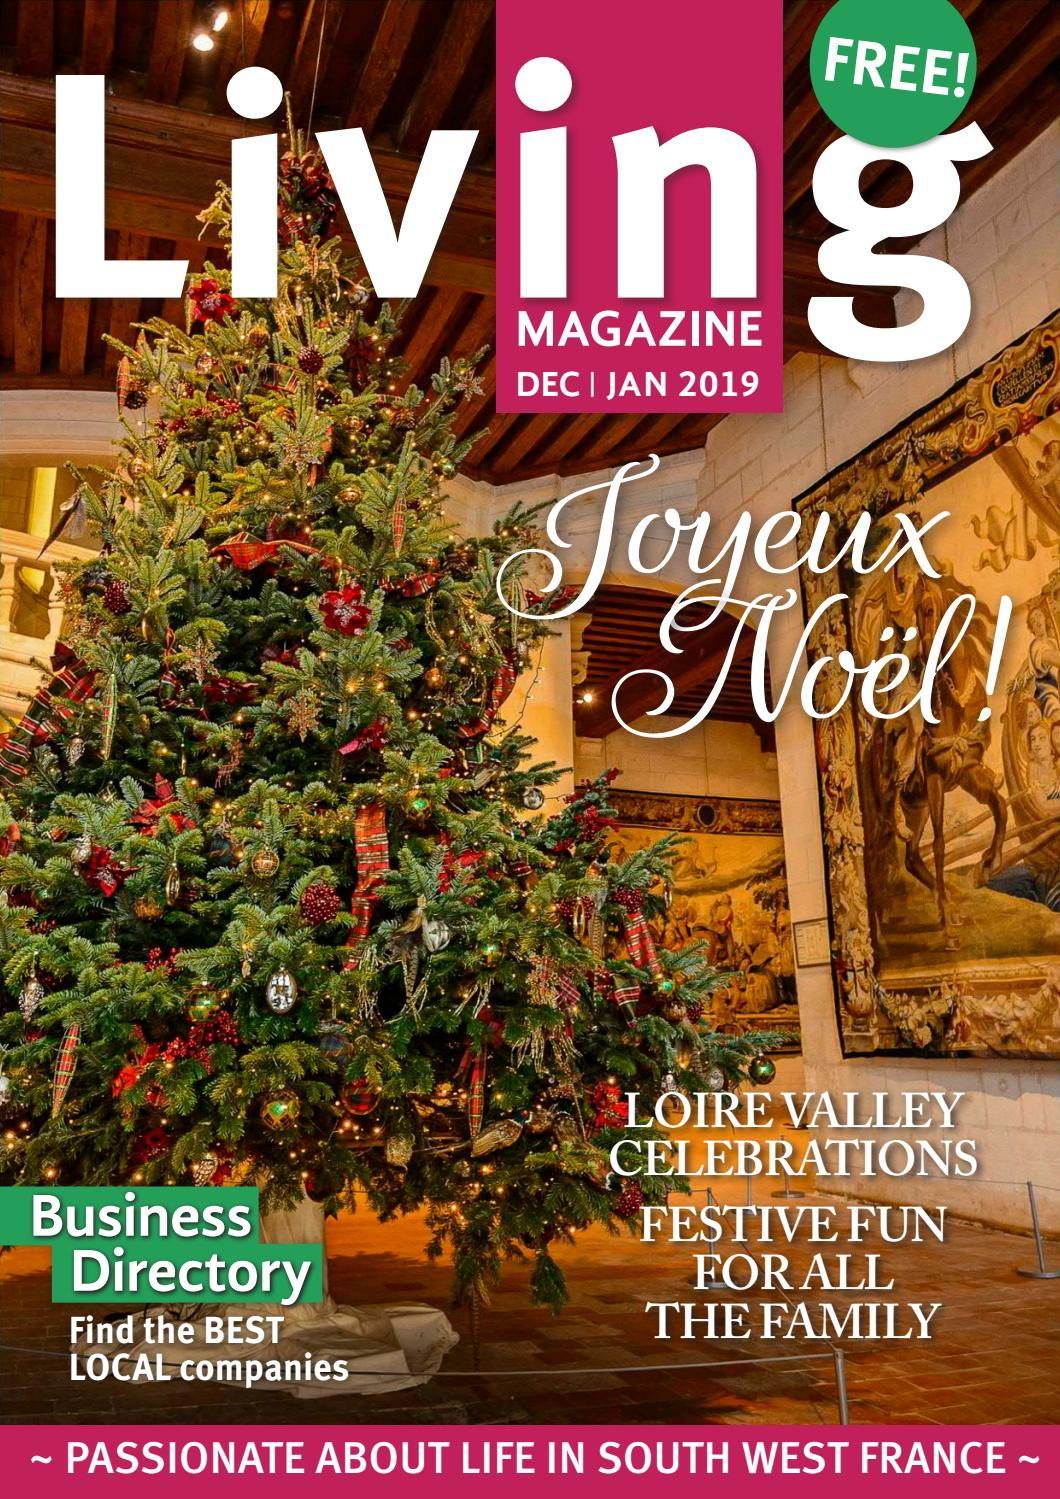 Living Magazine Dec 18 Jan 19 By Living Magazine - Issuu dedans Piscine Beaublanc